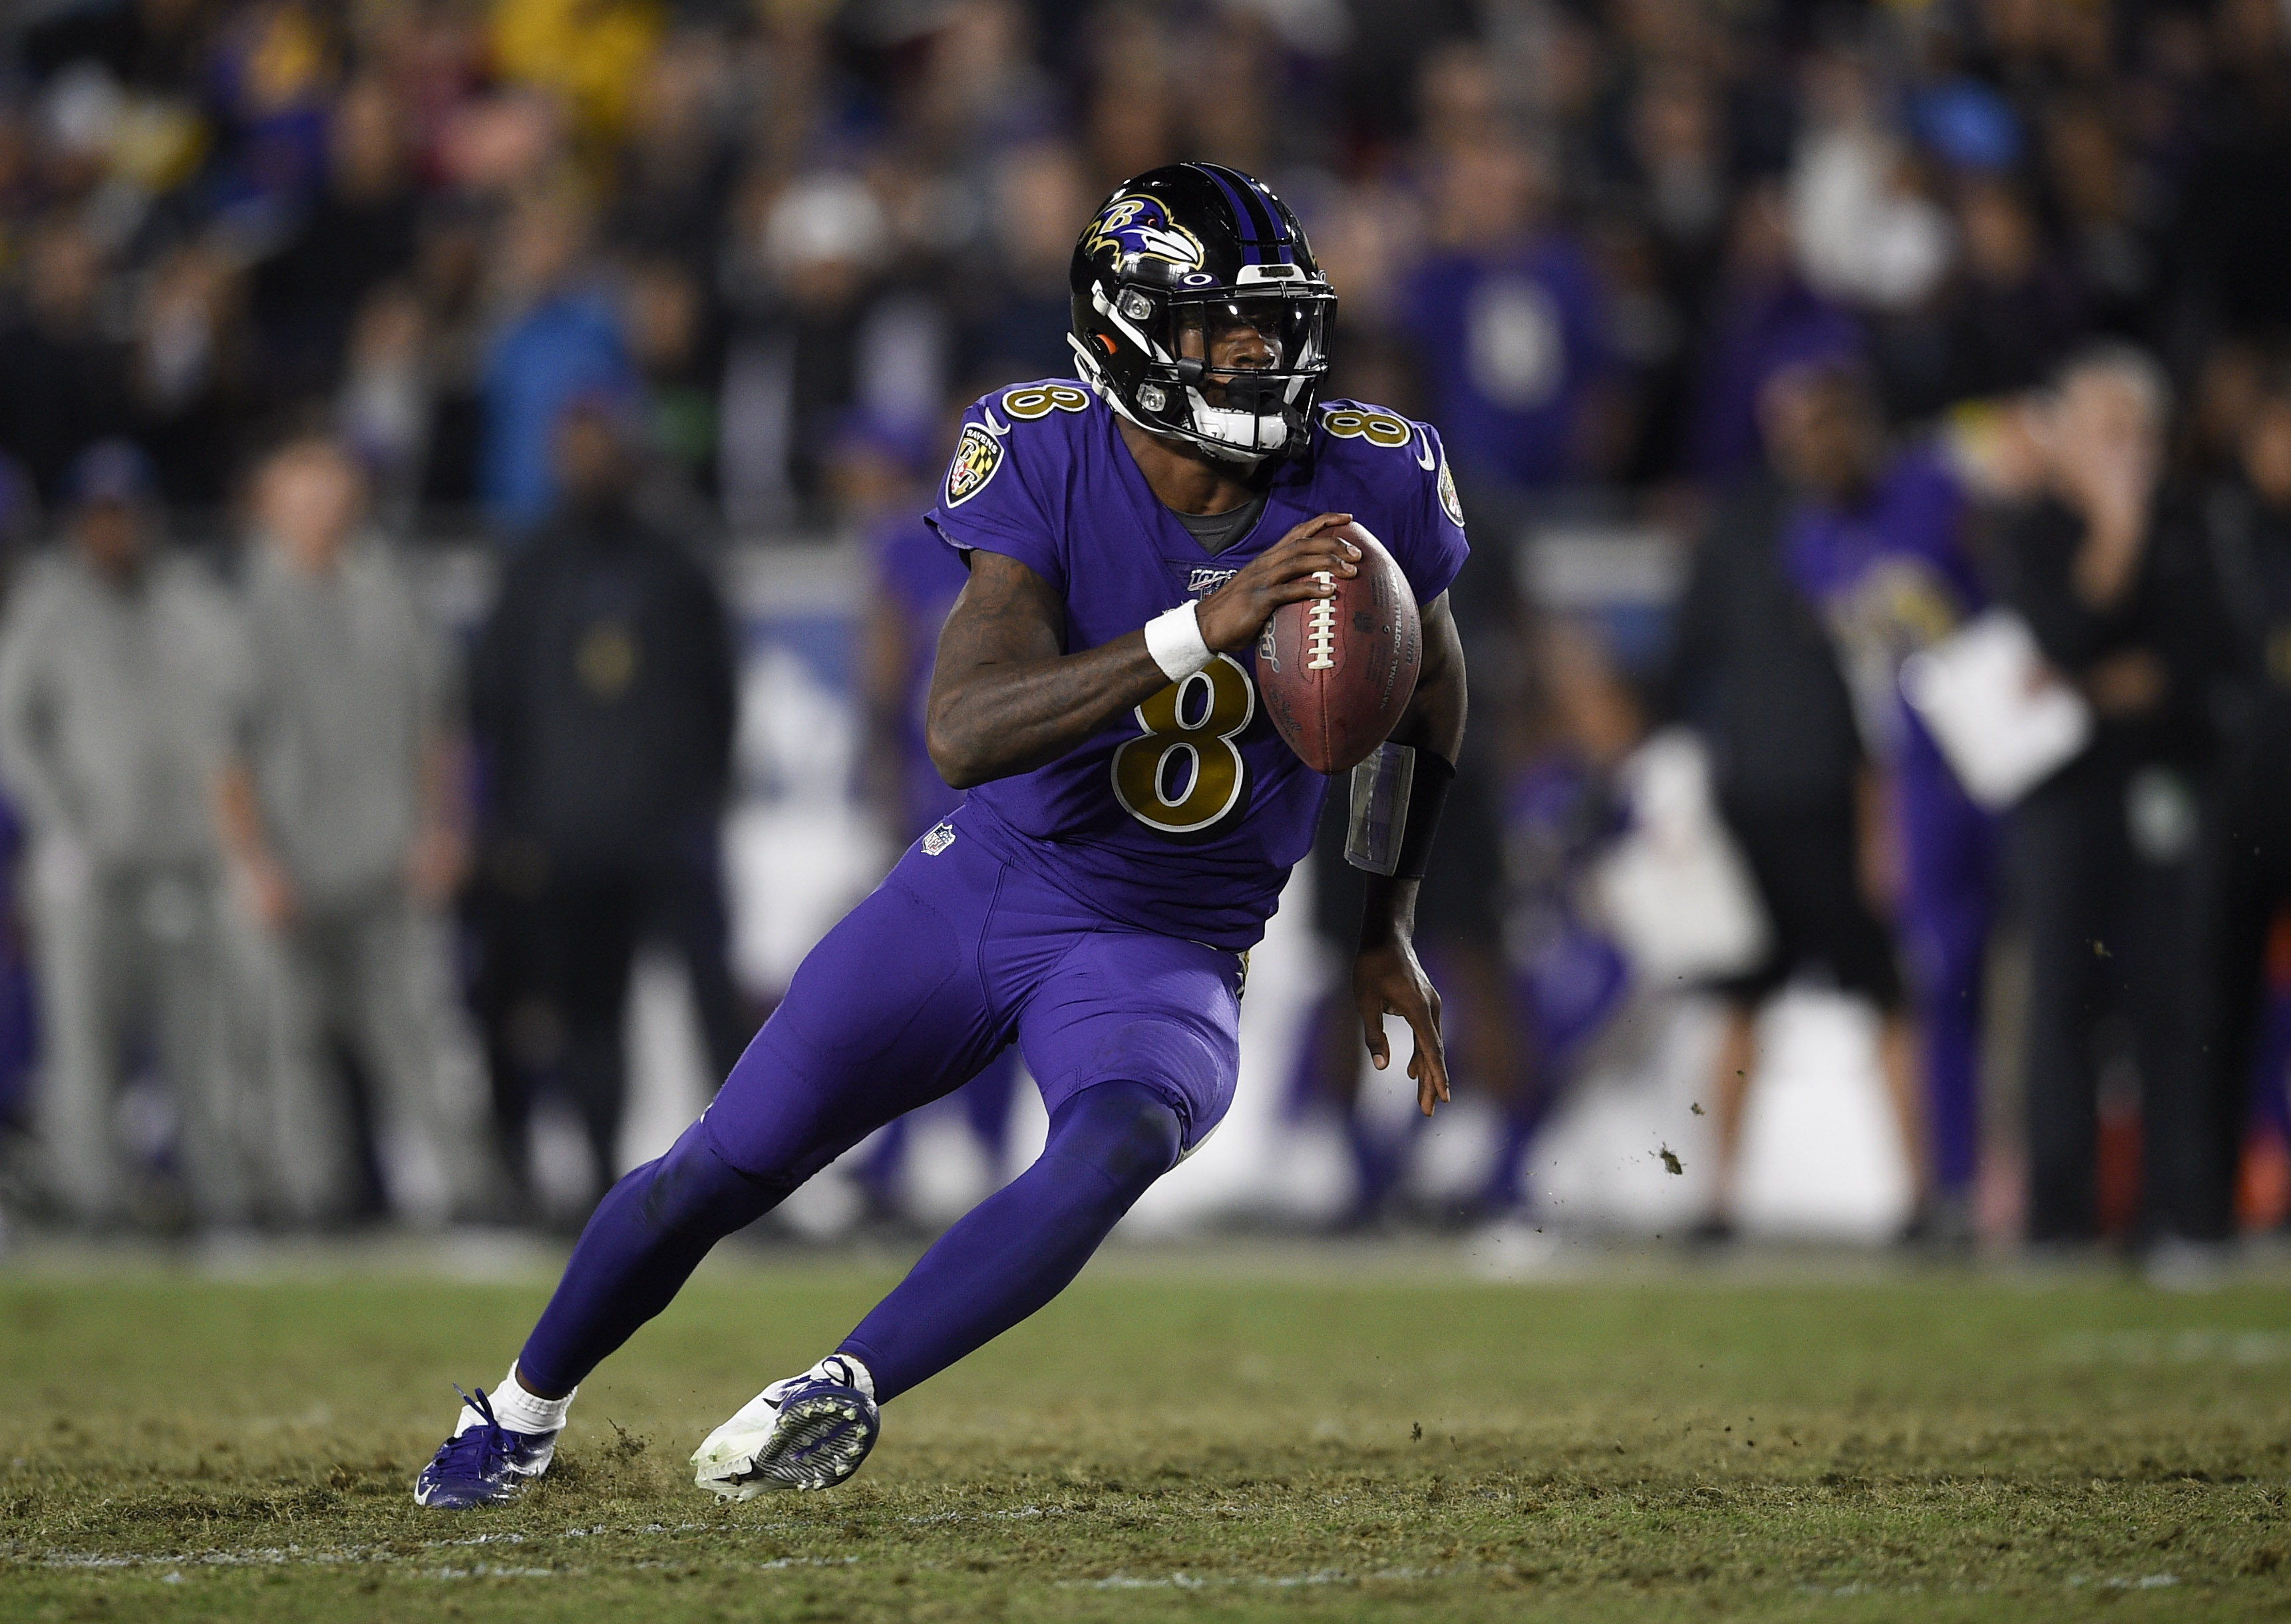 Titans 'don't want to end up on the highlight reels' defending Lamar Jackson